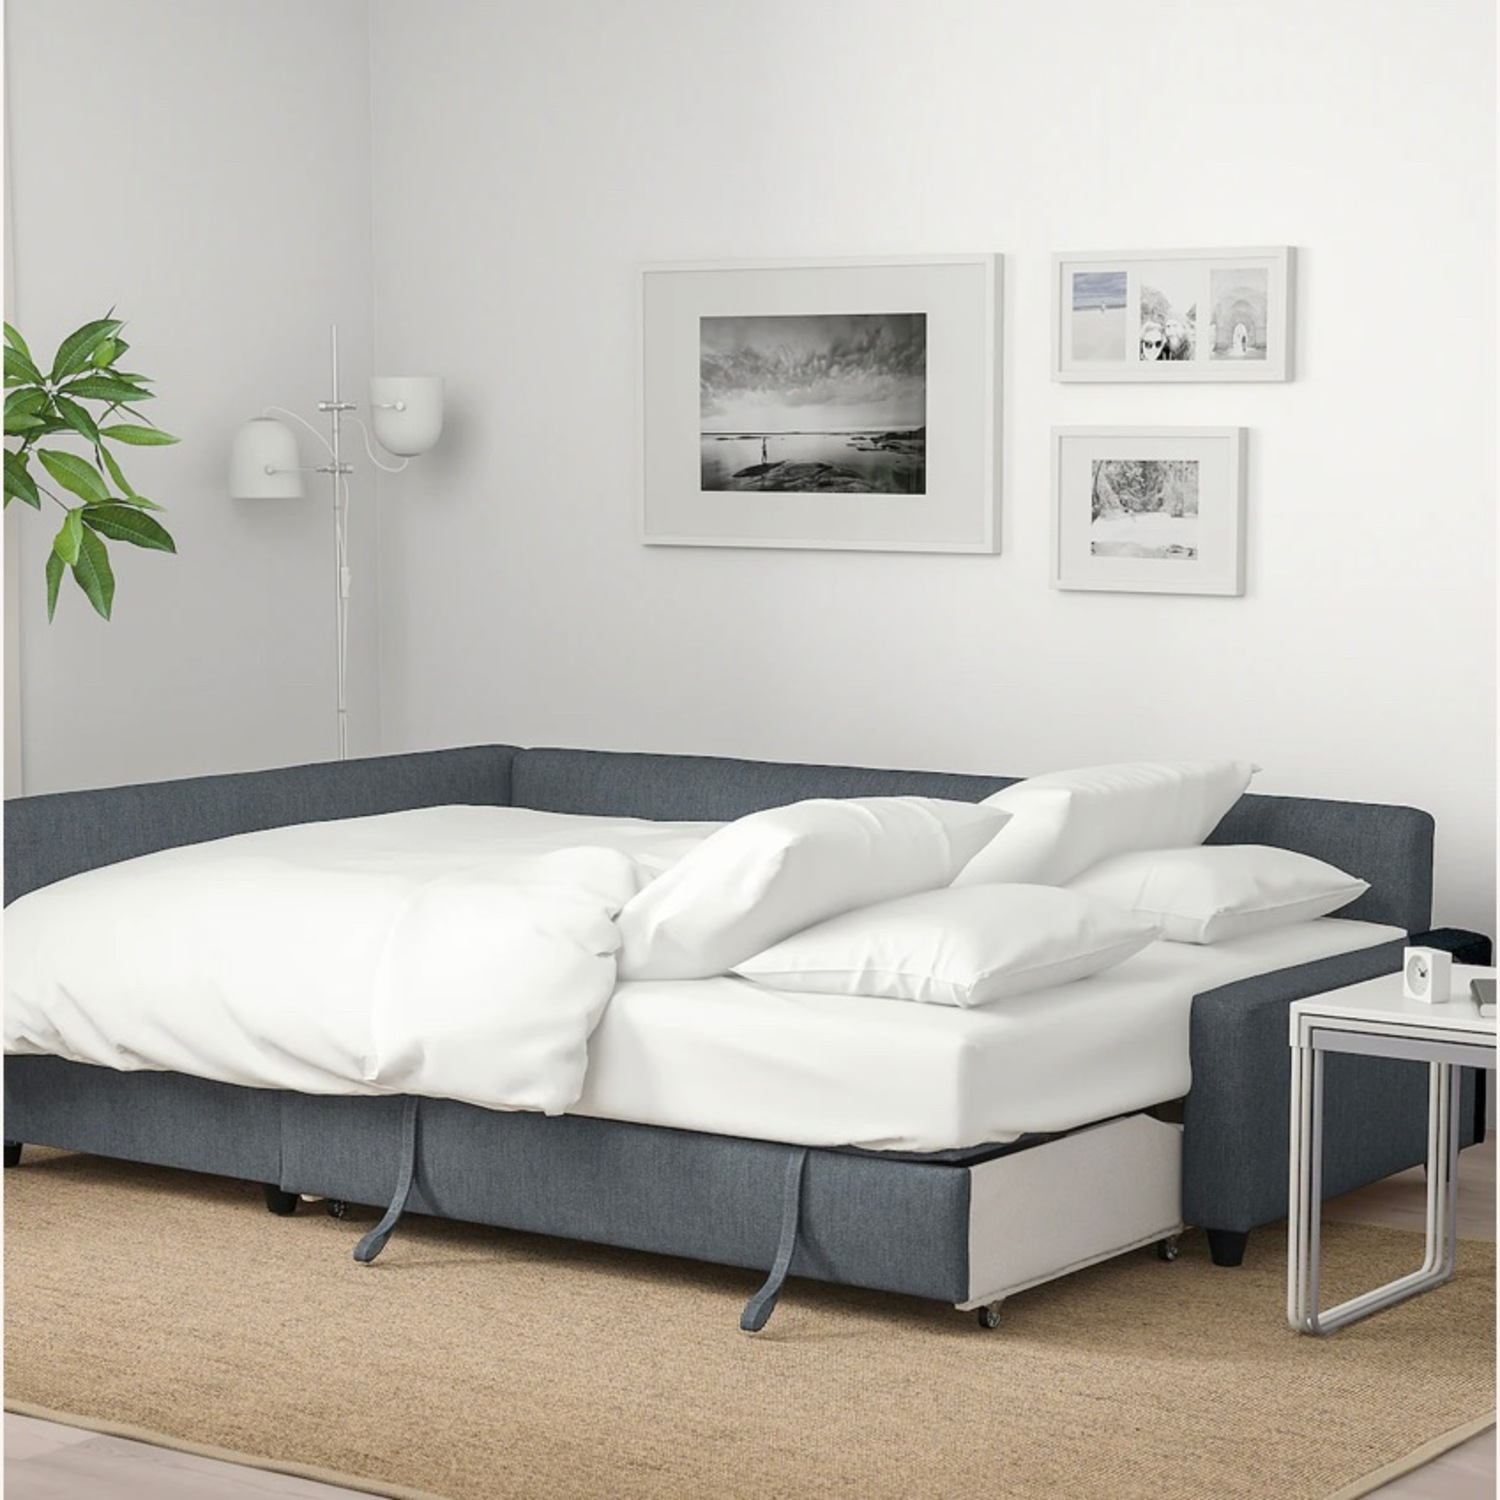 The Perfect Lounging Sectional Couch - image-10